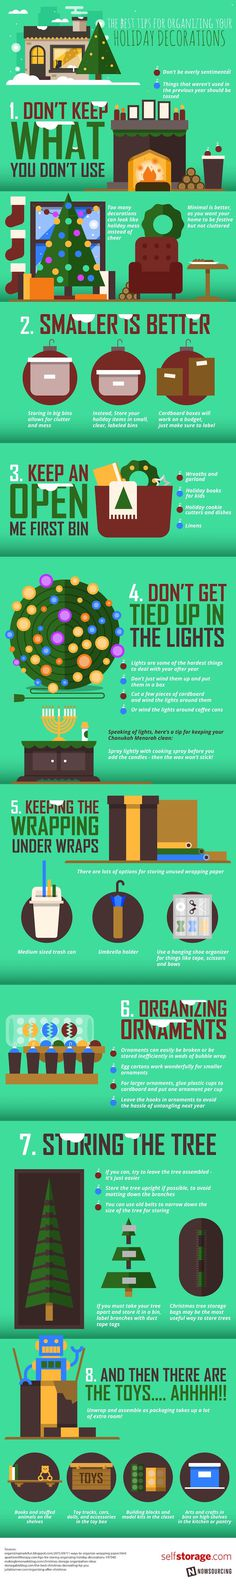 Check out these awesome #storage #tips that can help you reduce your #holiday #clutter! No more tangled lights!